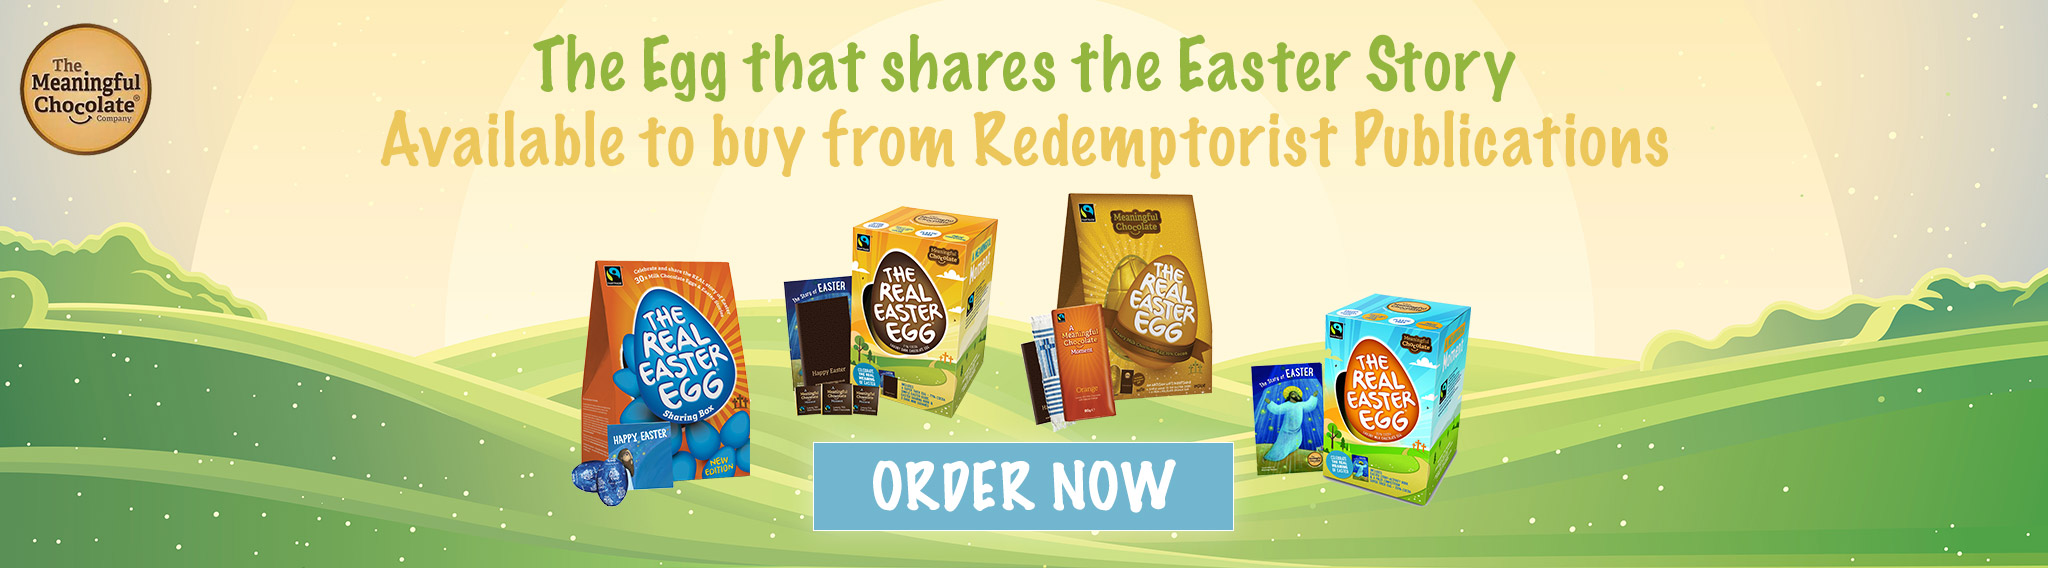 We're now an official distributor of The Real Easter Eggs